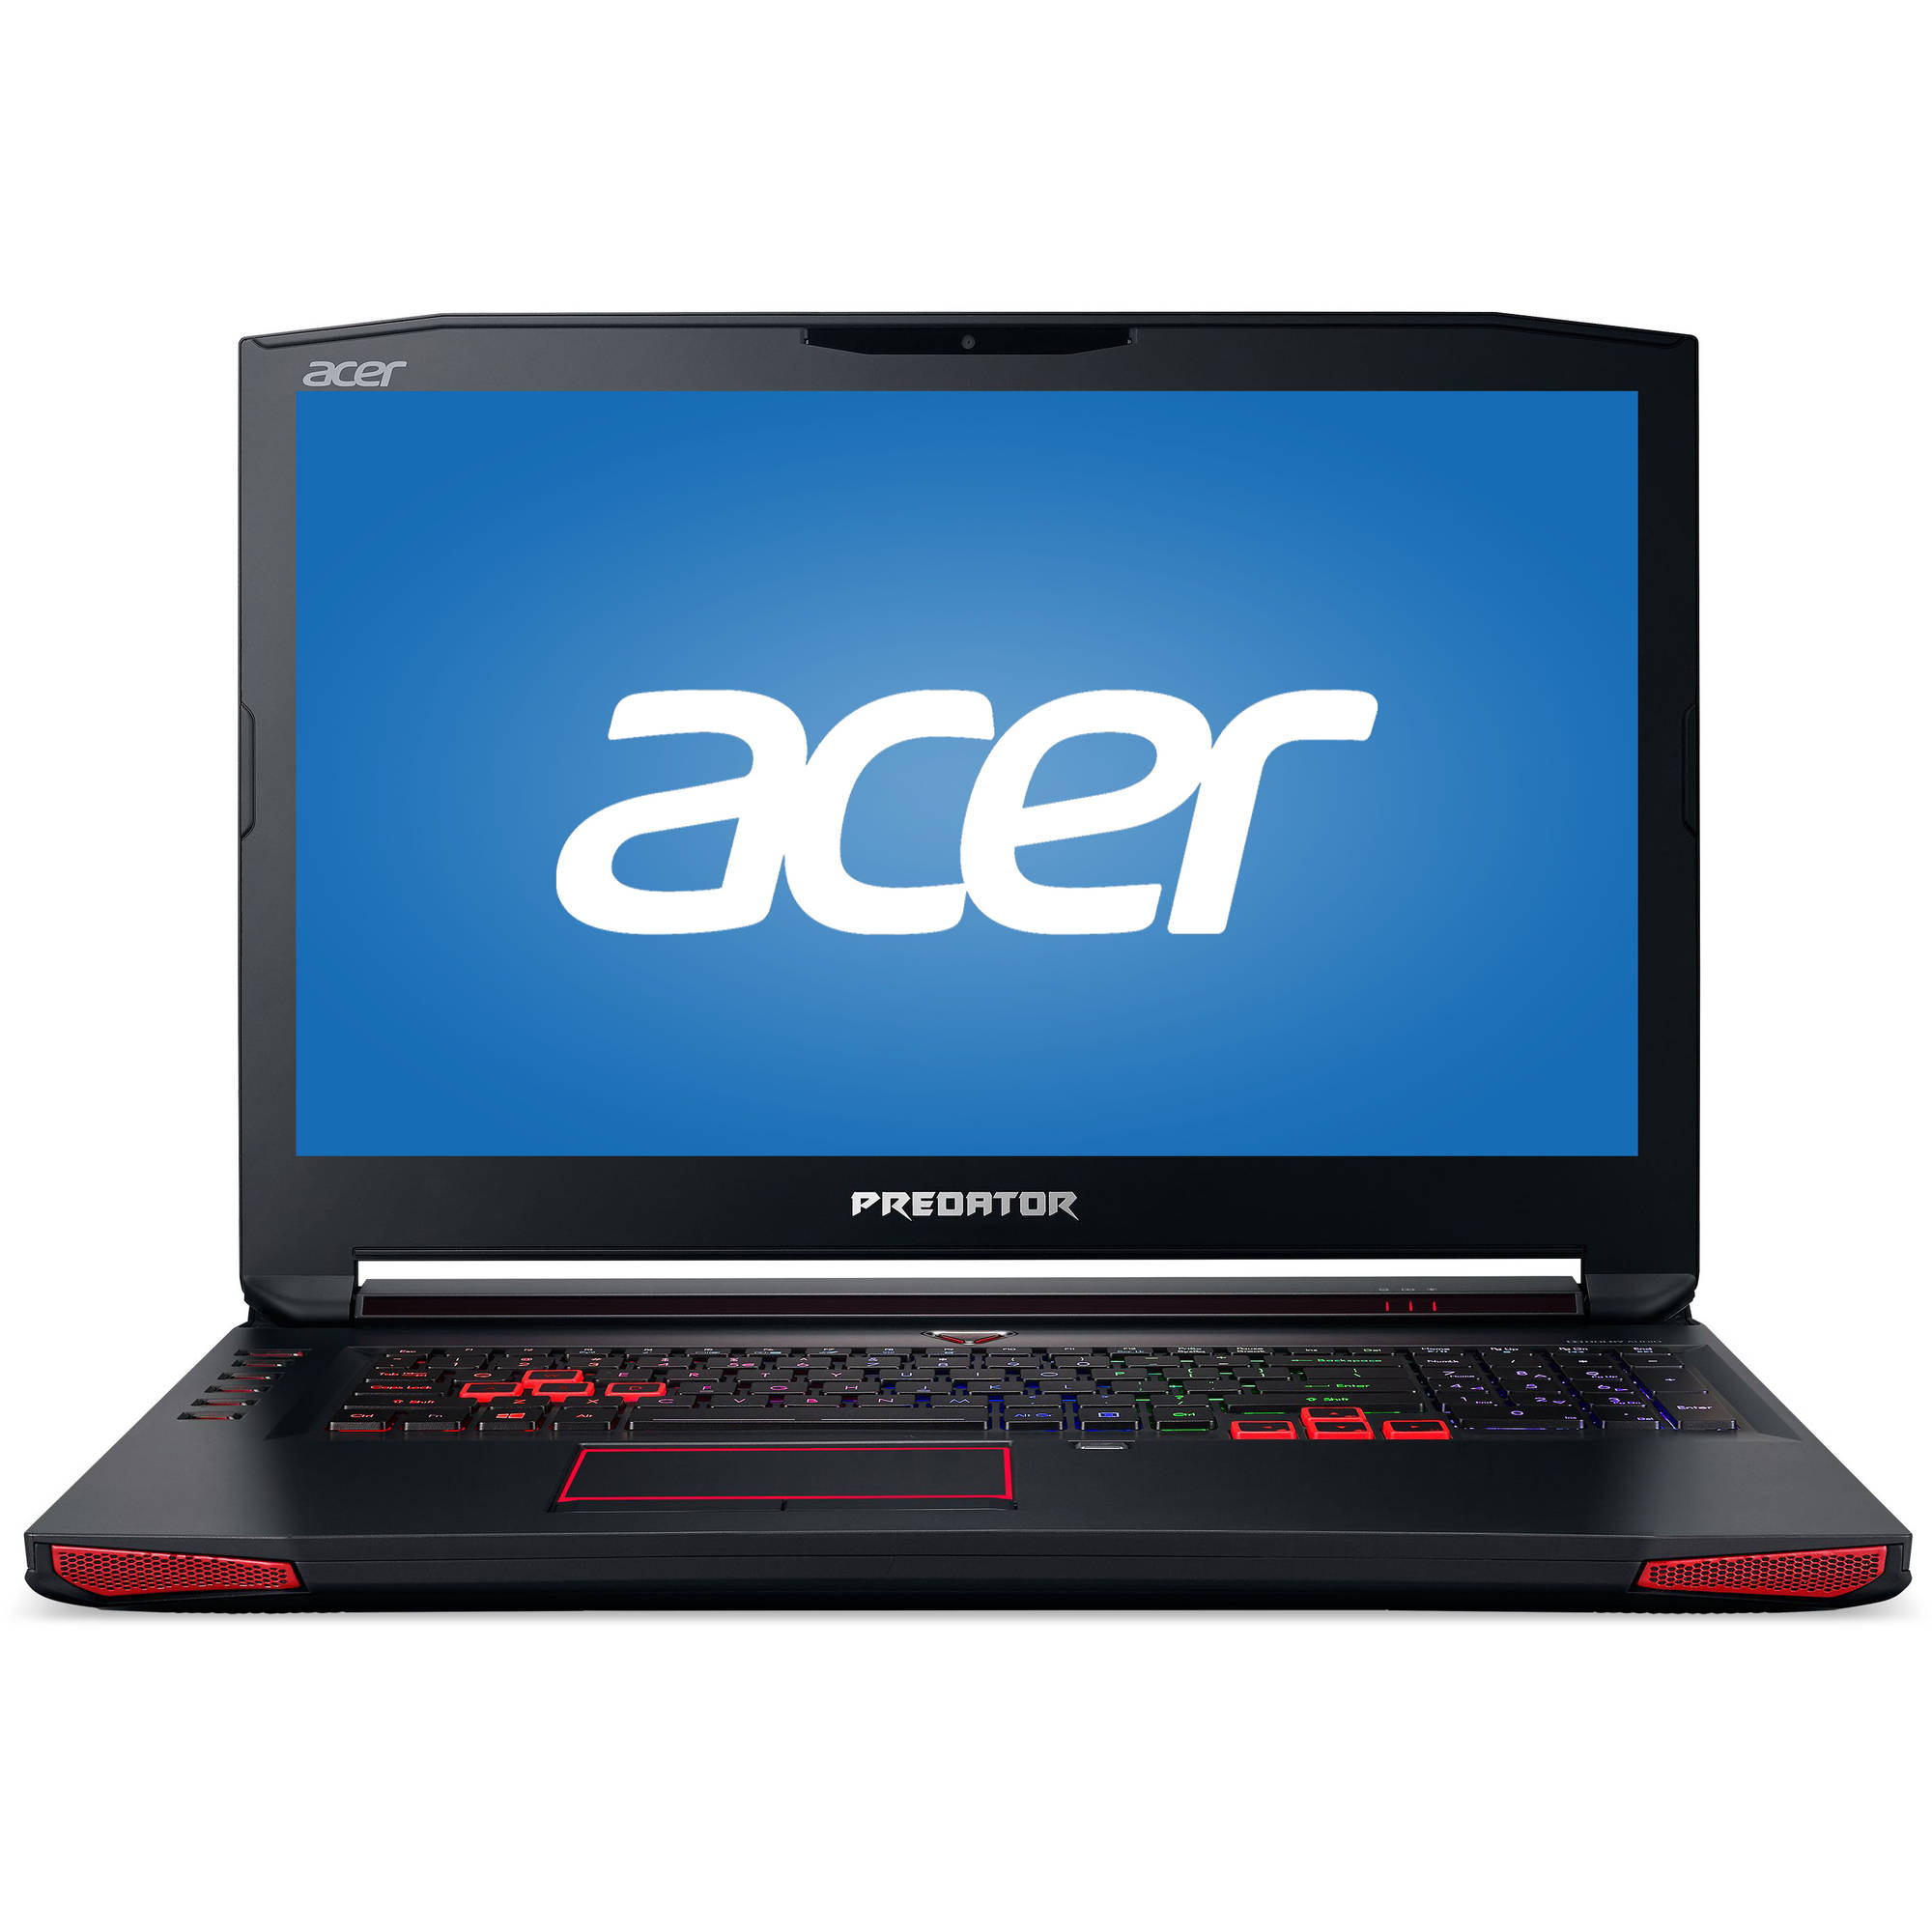 "Acer G9-593-77WF 15.6"" Predator Gaming Laptop, Windows 10, Intel Core i7-6700HQ, 16GB RAM, 256GB Solid State Drive by Acer"